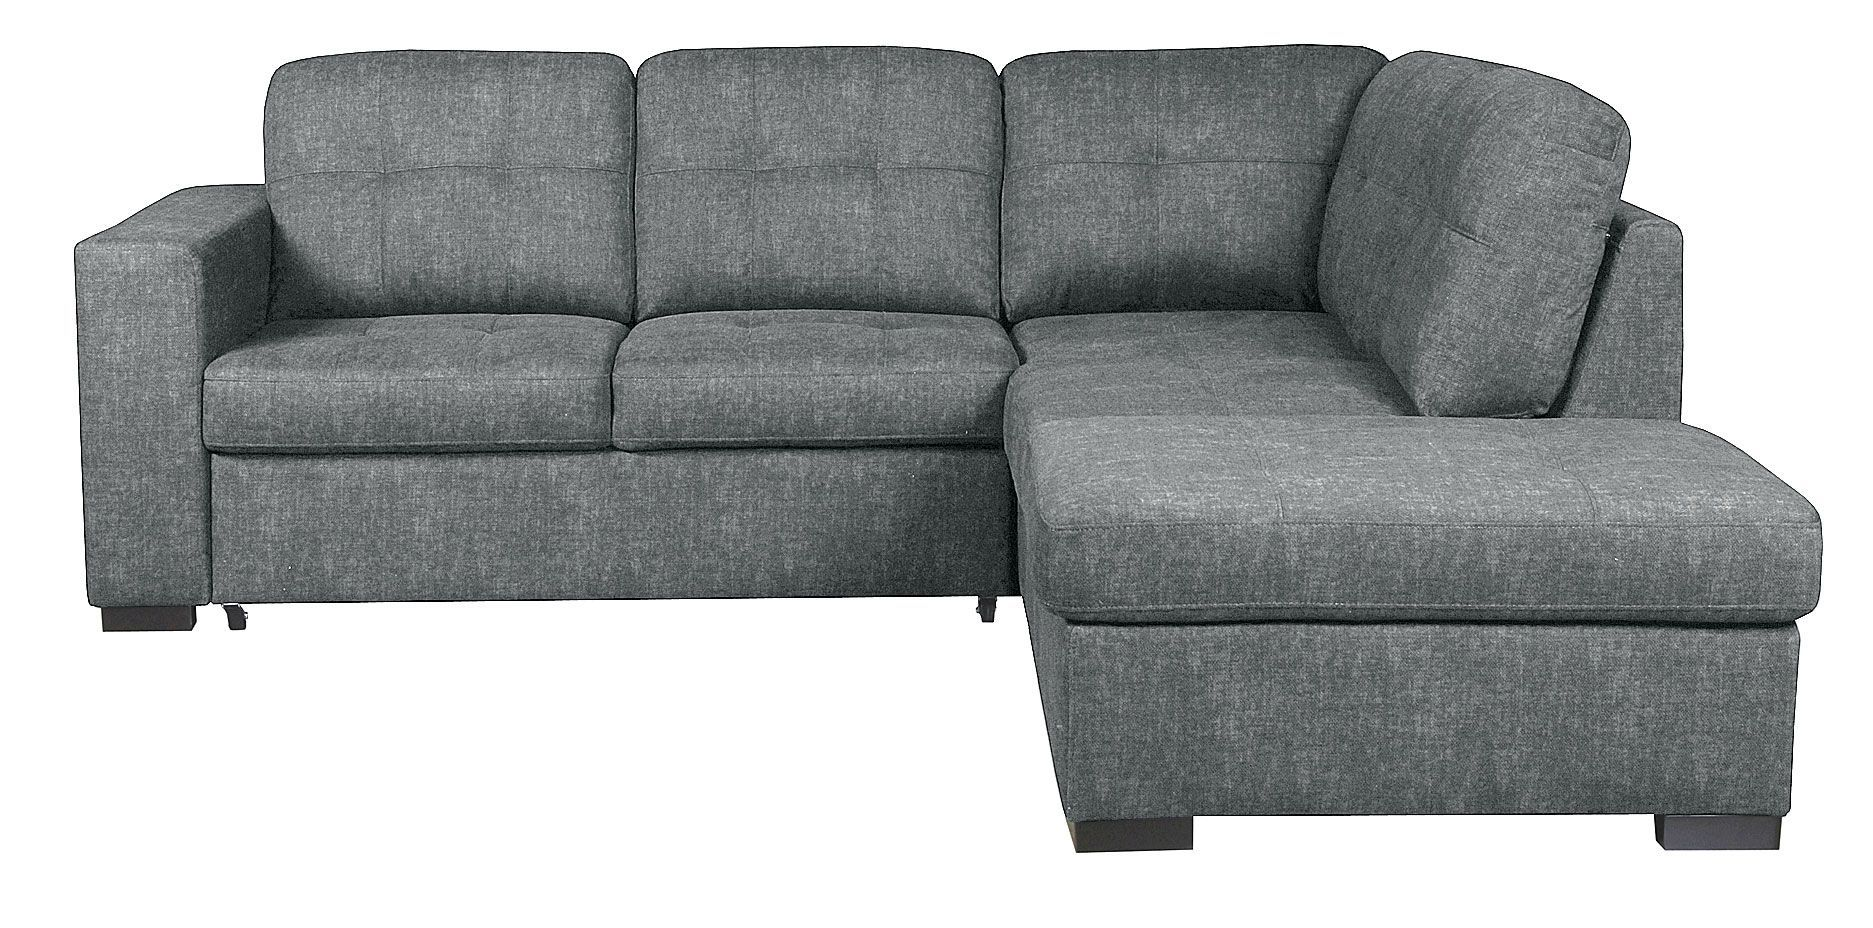 Sectionnel Lit Gauche Surplus Rd Sectional Couch Couch Sofas